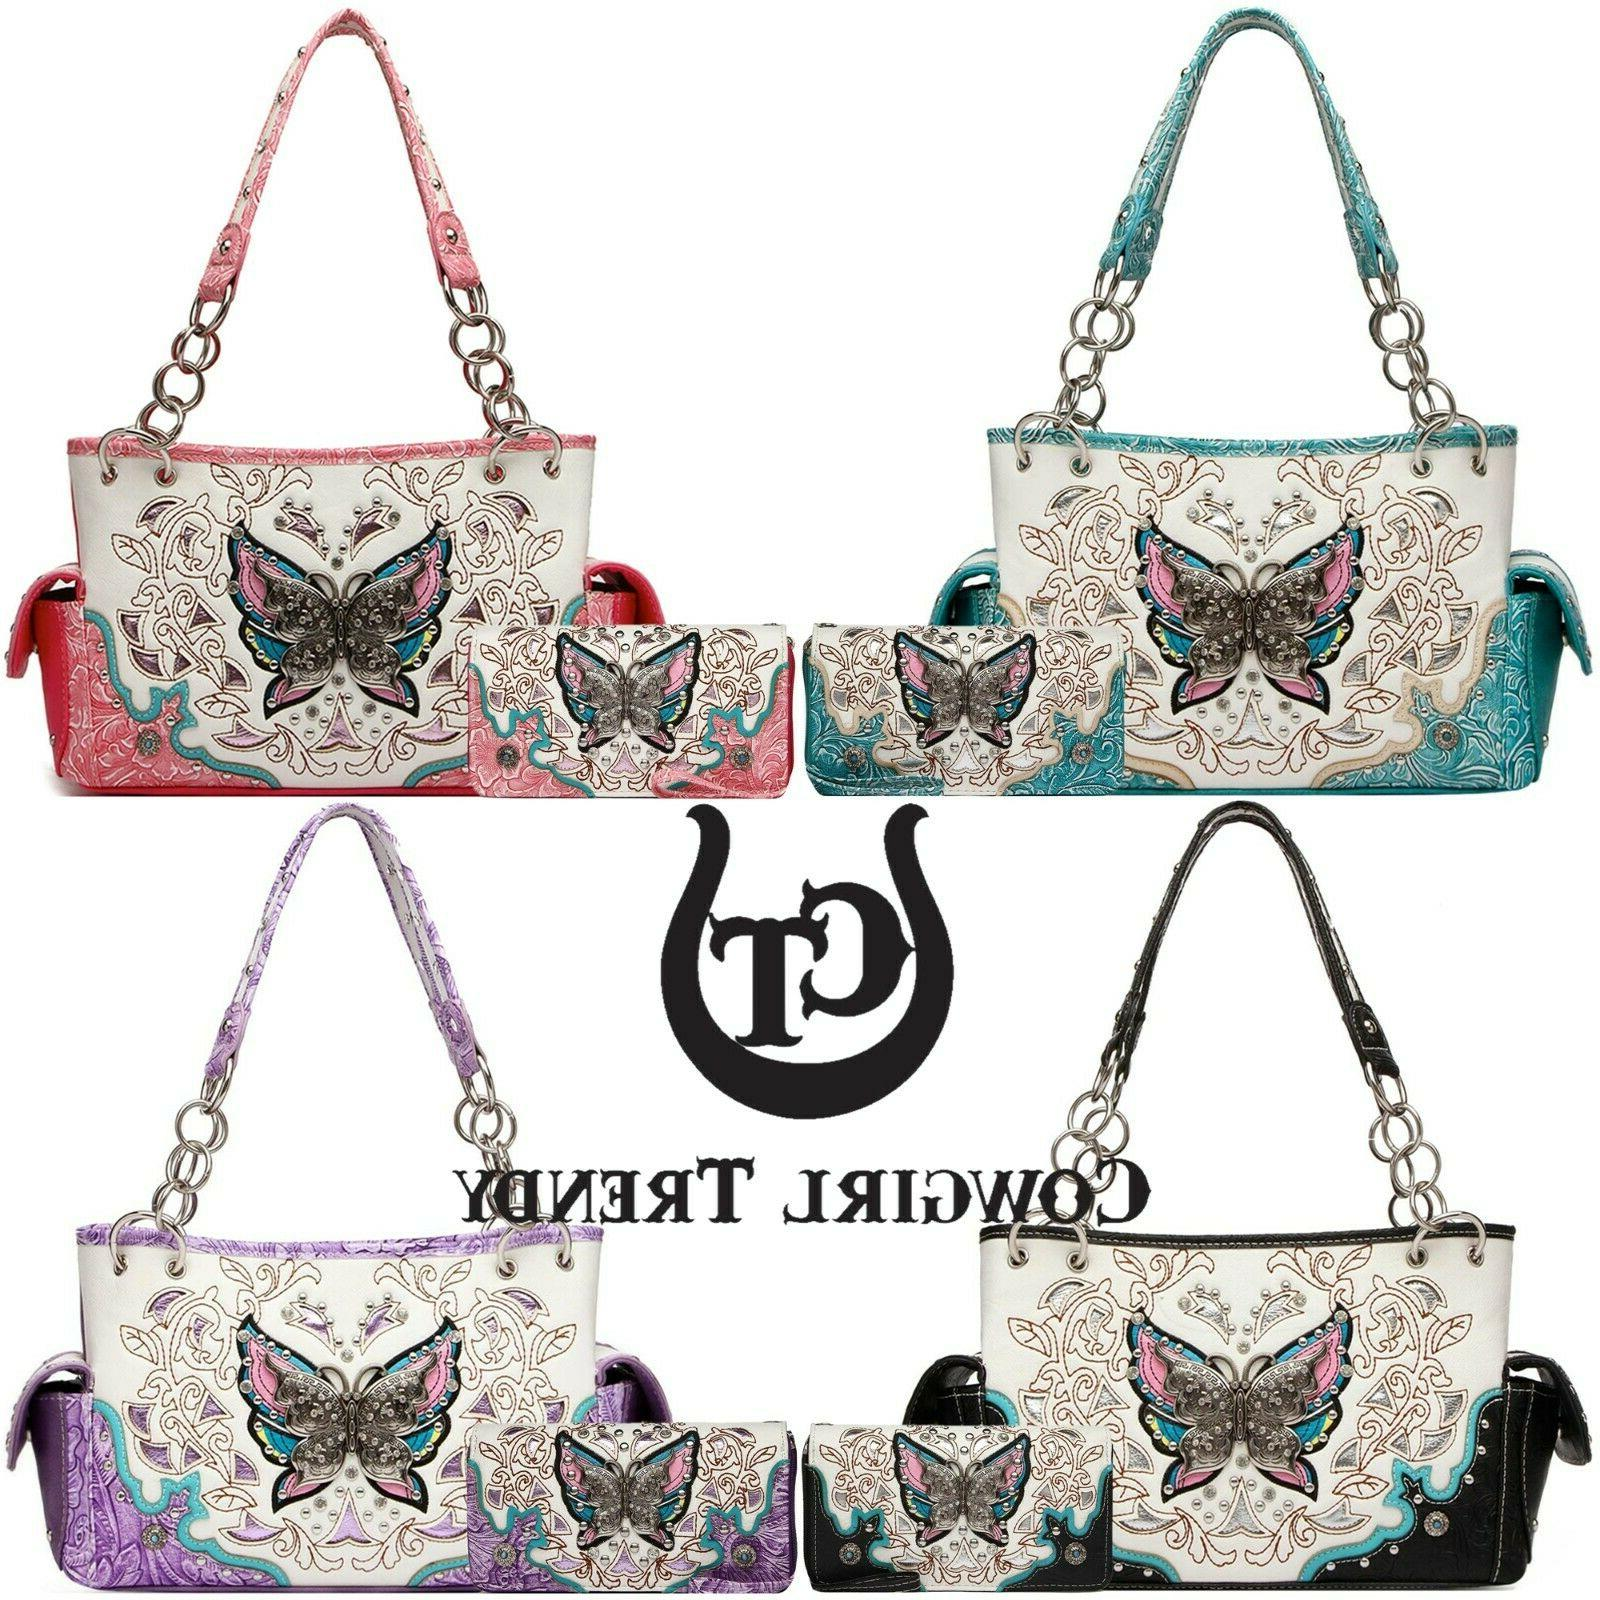 butterfly western style handbag concealed carry purse